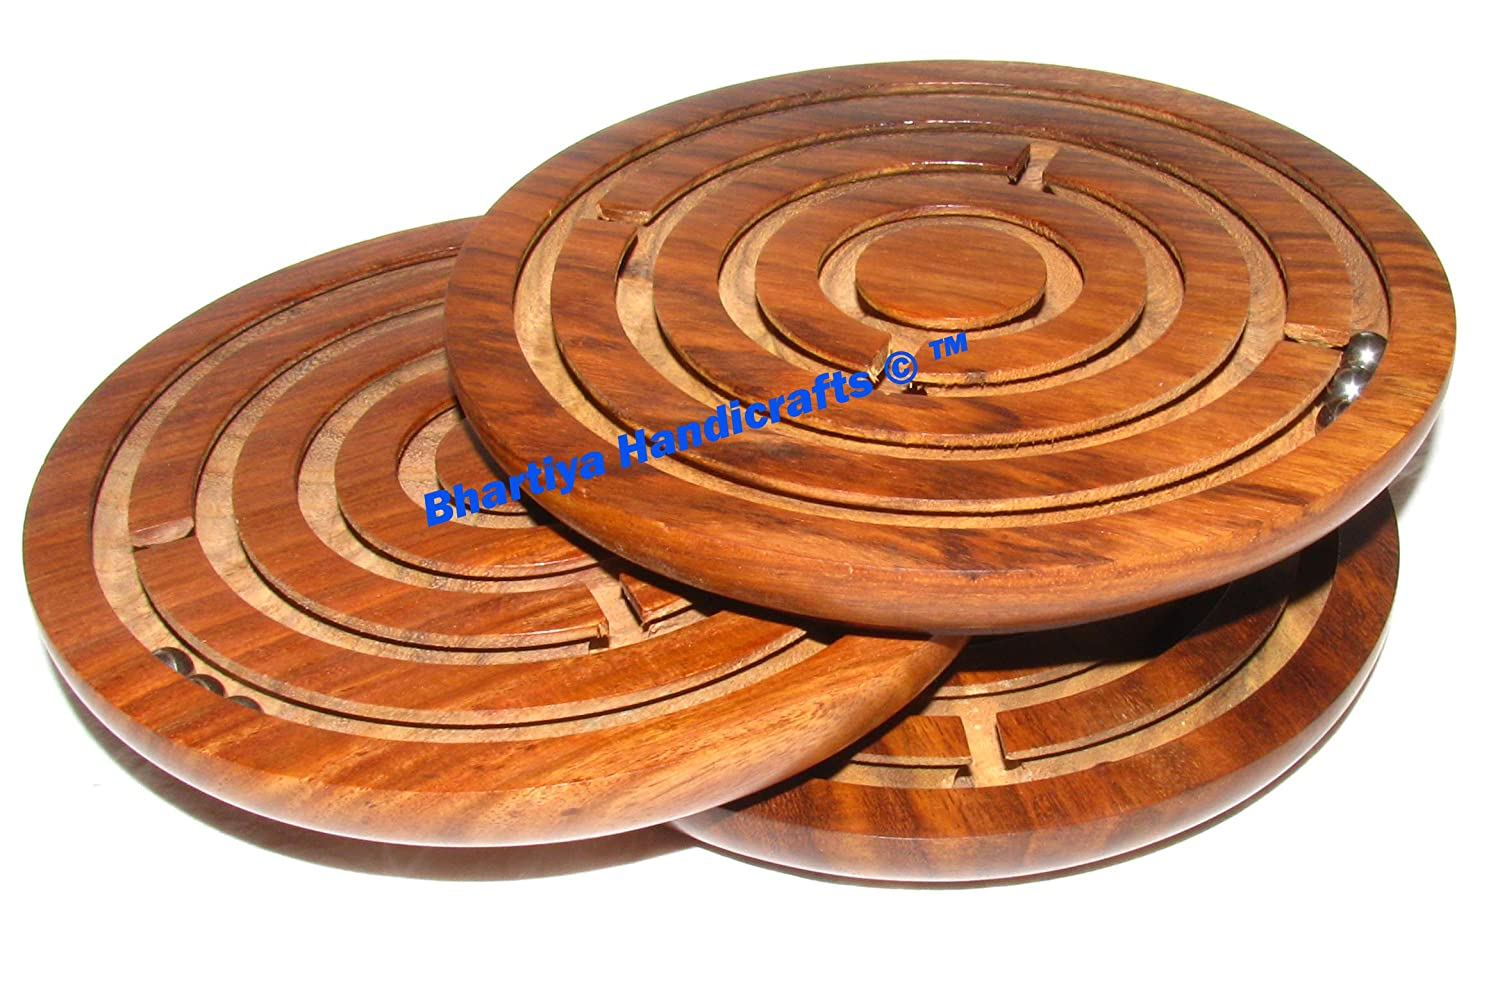 Round Labyrinth Maze Board Game Wooden Toys Brain Teaser Puzzle Game